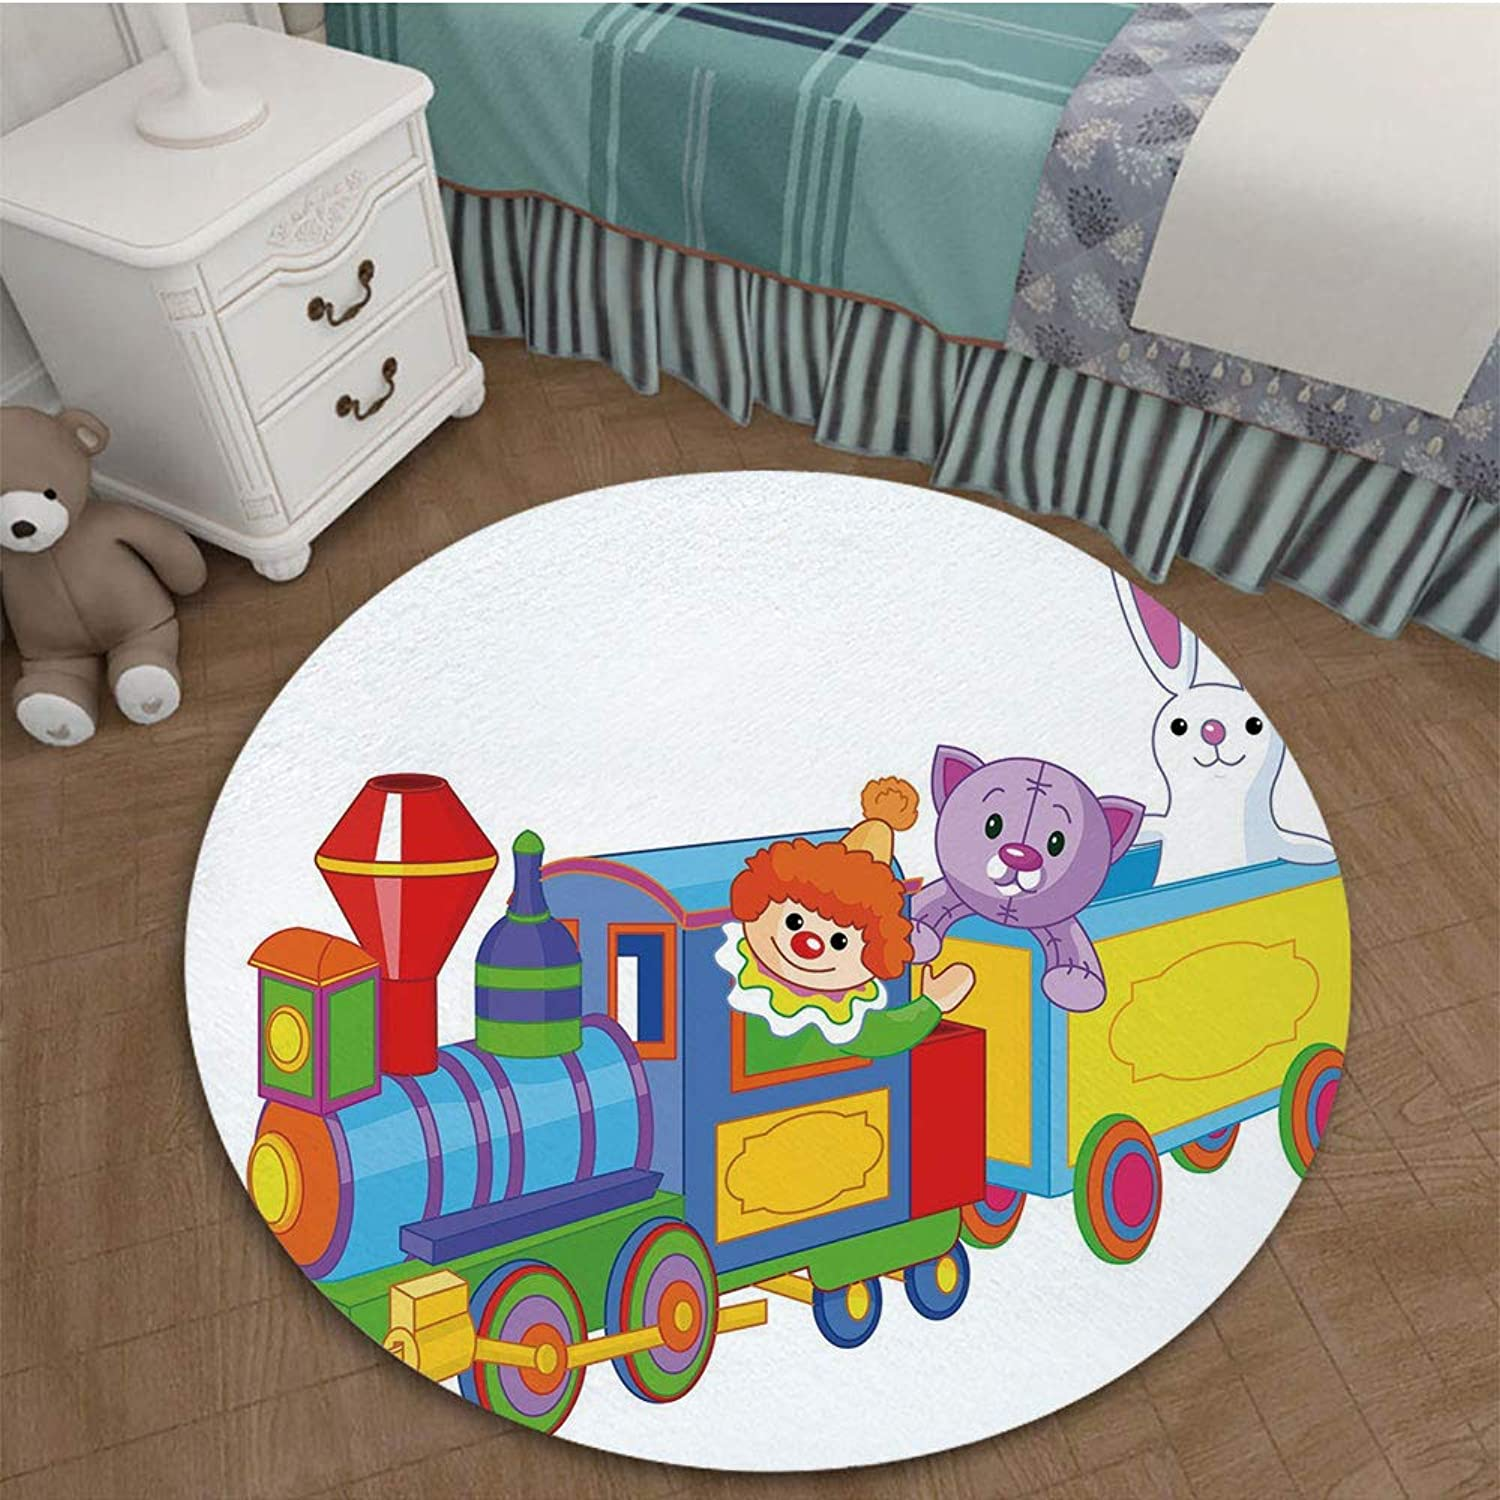 color Printed Carpet Anti-Slip Floor Rug Soft Baby for Living Room Bedroom 2.95 Ft Diameter Nursery,Clown Cat and Bunny Sitting in The Train Kids Toys Cartoon Style Funny Cheerful,Multicolor